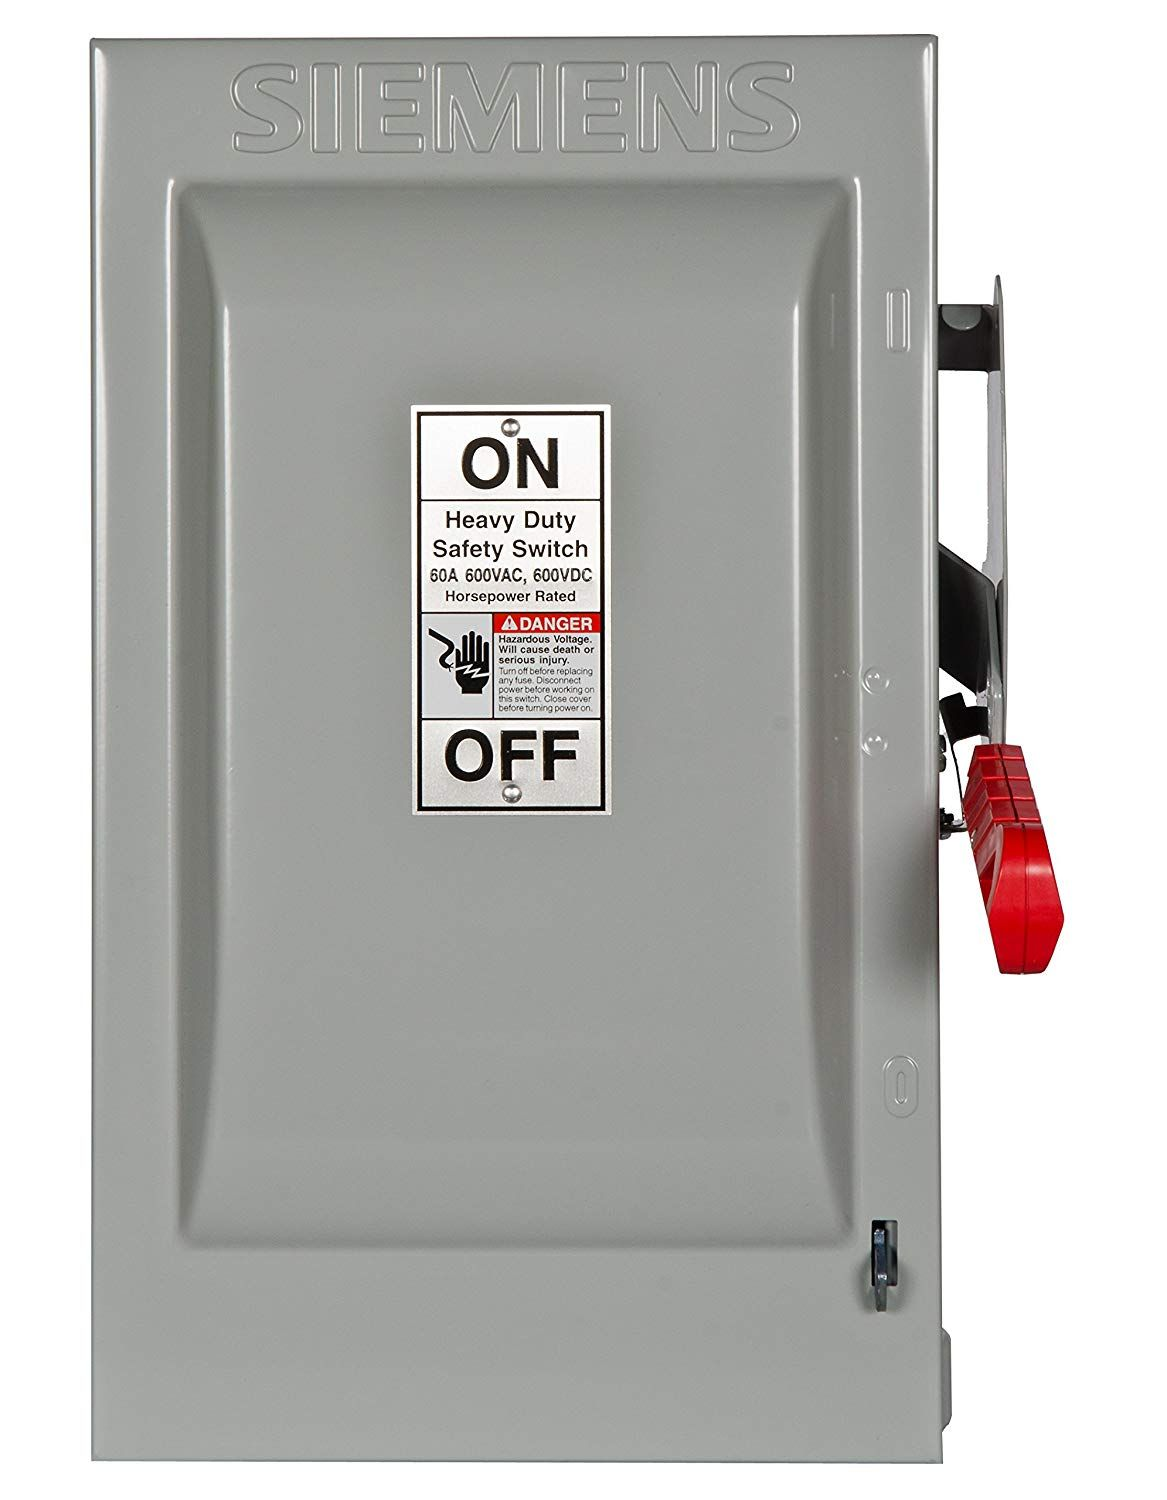 Siemens Hf362 60 Amp 3 Pole 600 Volt 3 Wire Fused Heavy Duty Safety Switches Click Image For More Details This Is An Affil Safety Switch Siemens Switches